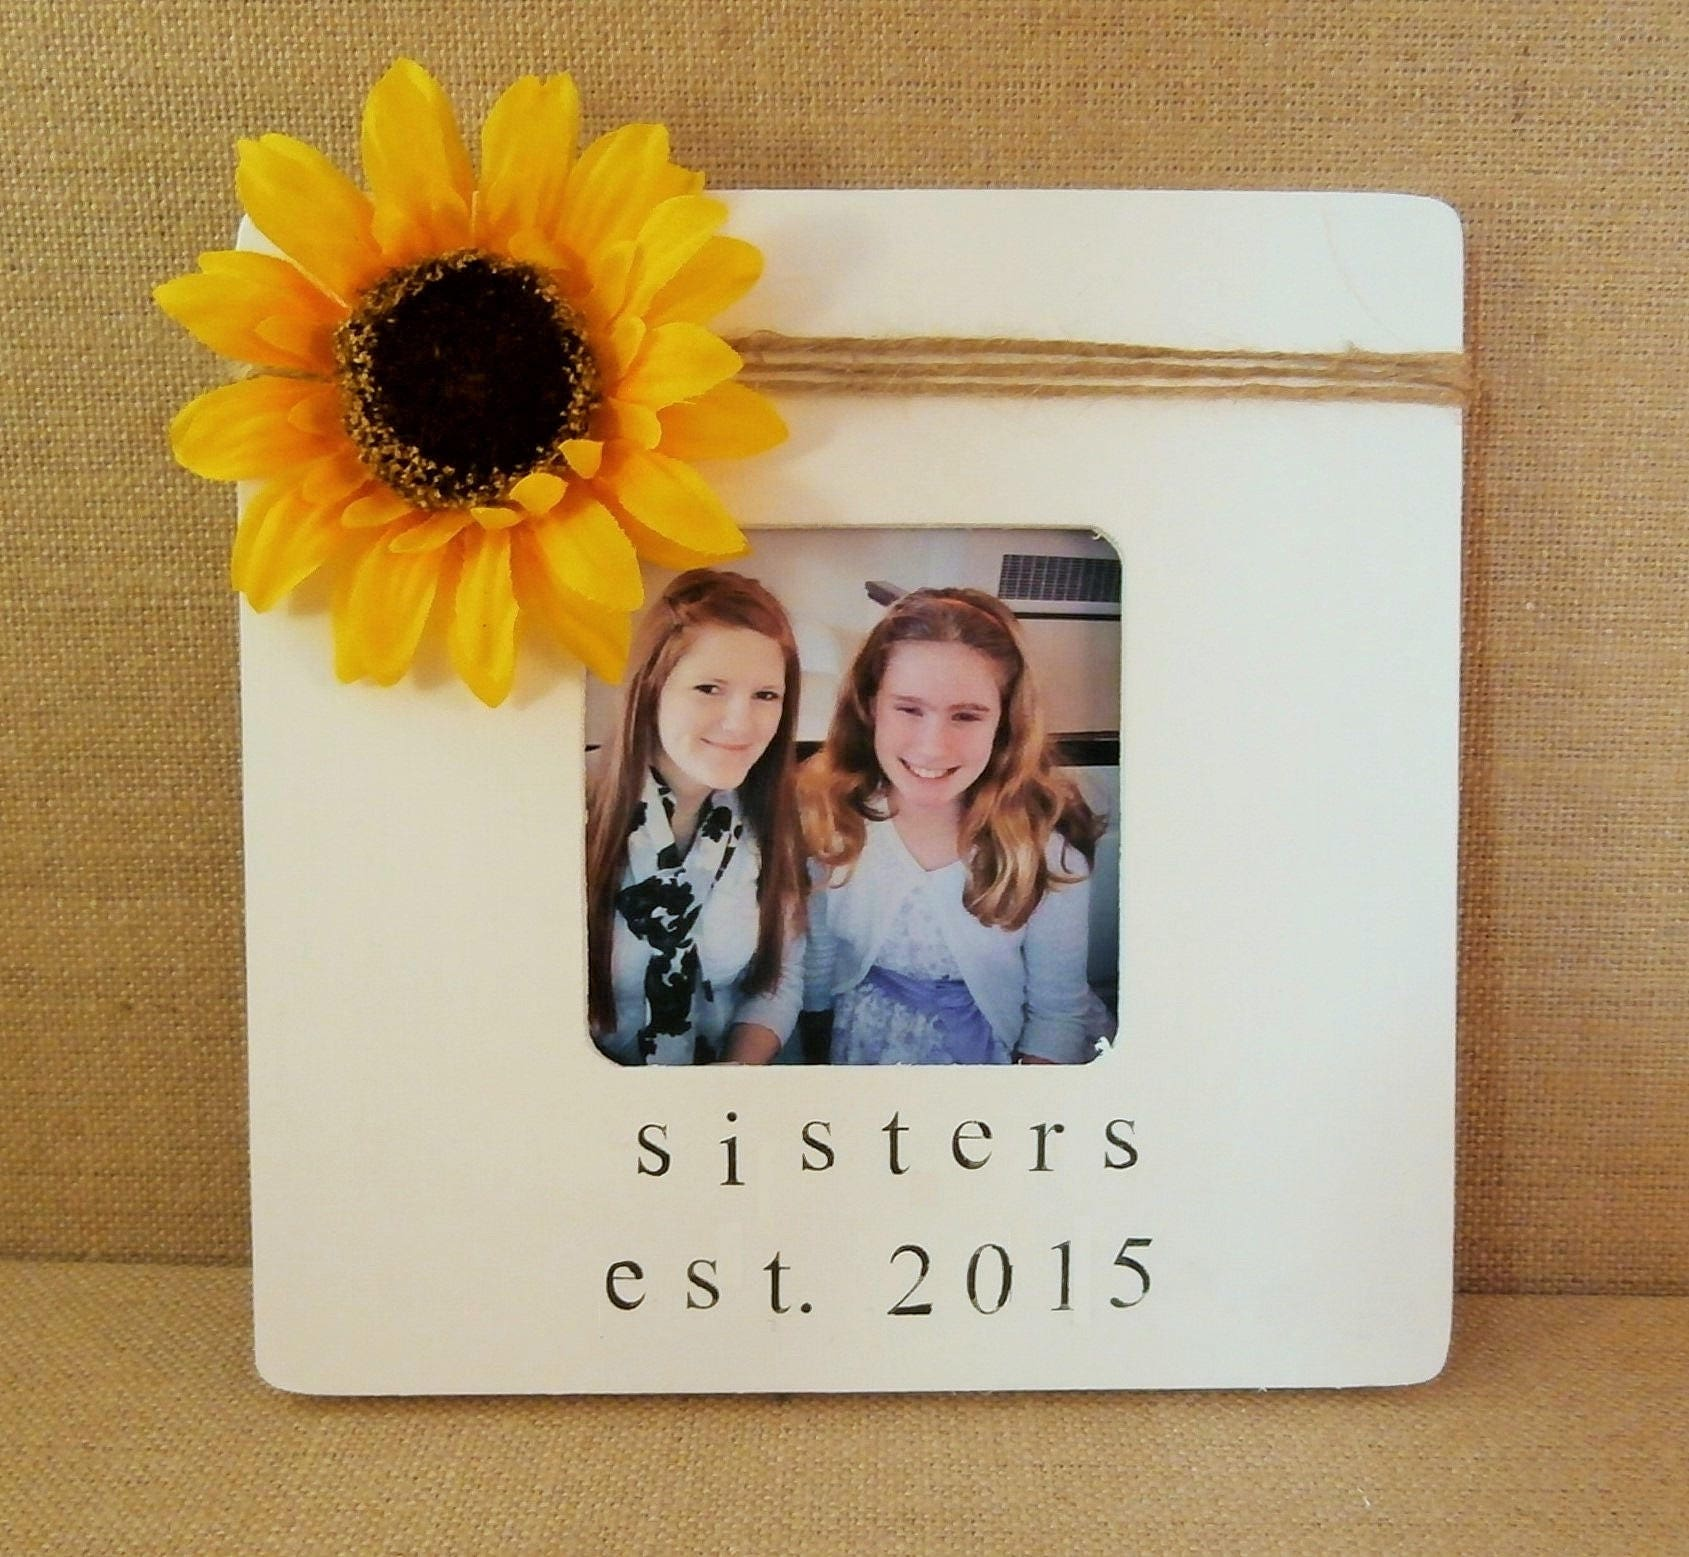 Gift For Sister In Law Wedding: Sister In Law Wedding Gift Sunflower Picture Frame